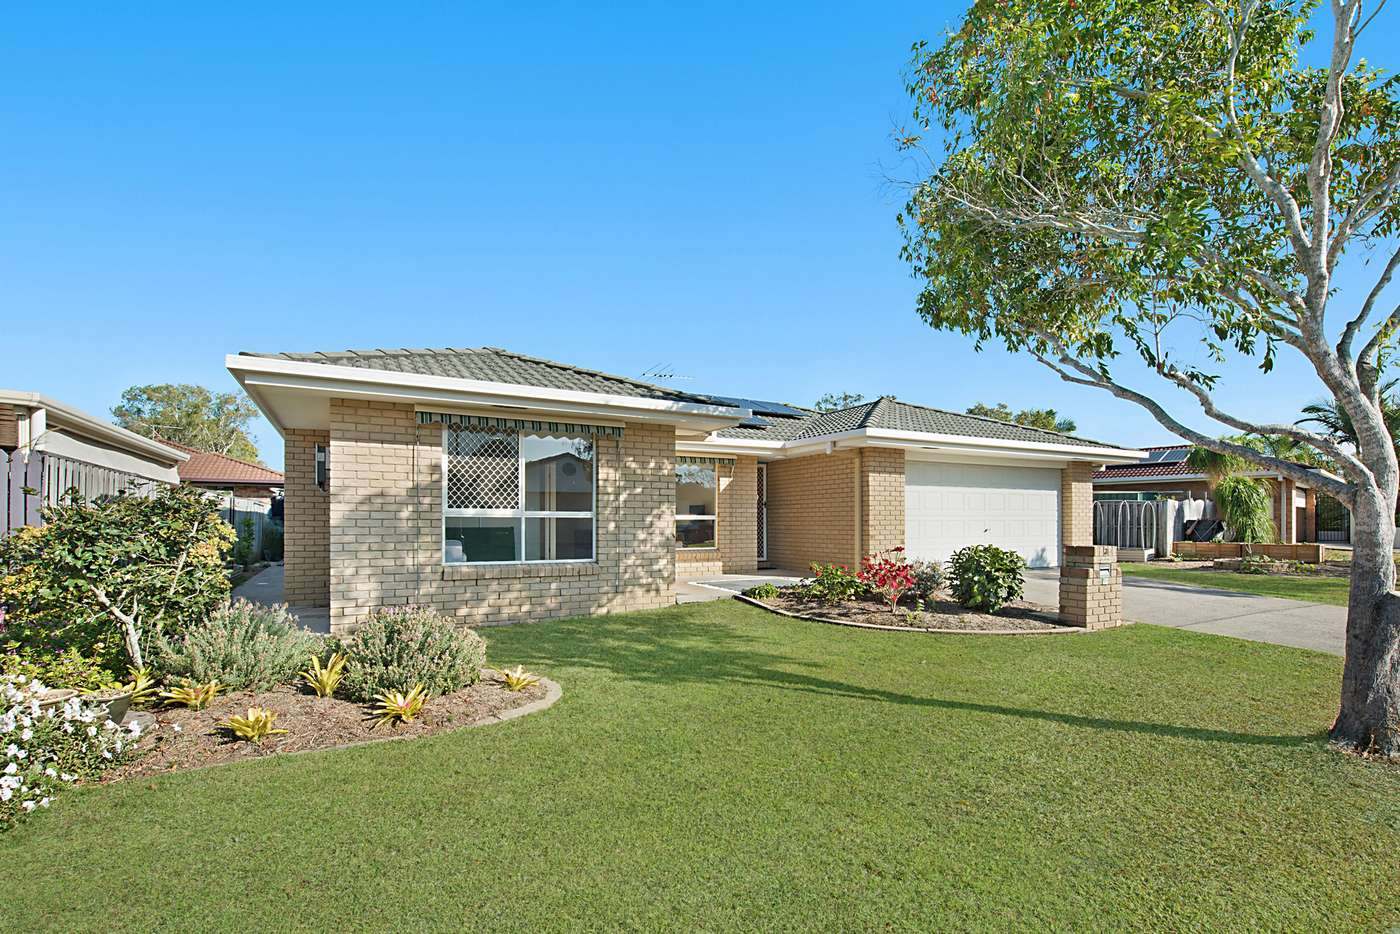 Main view of Homely house listing, 3 Padua Place, Boondall QLD 4034